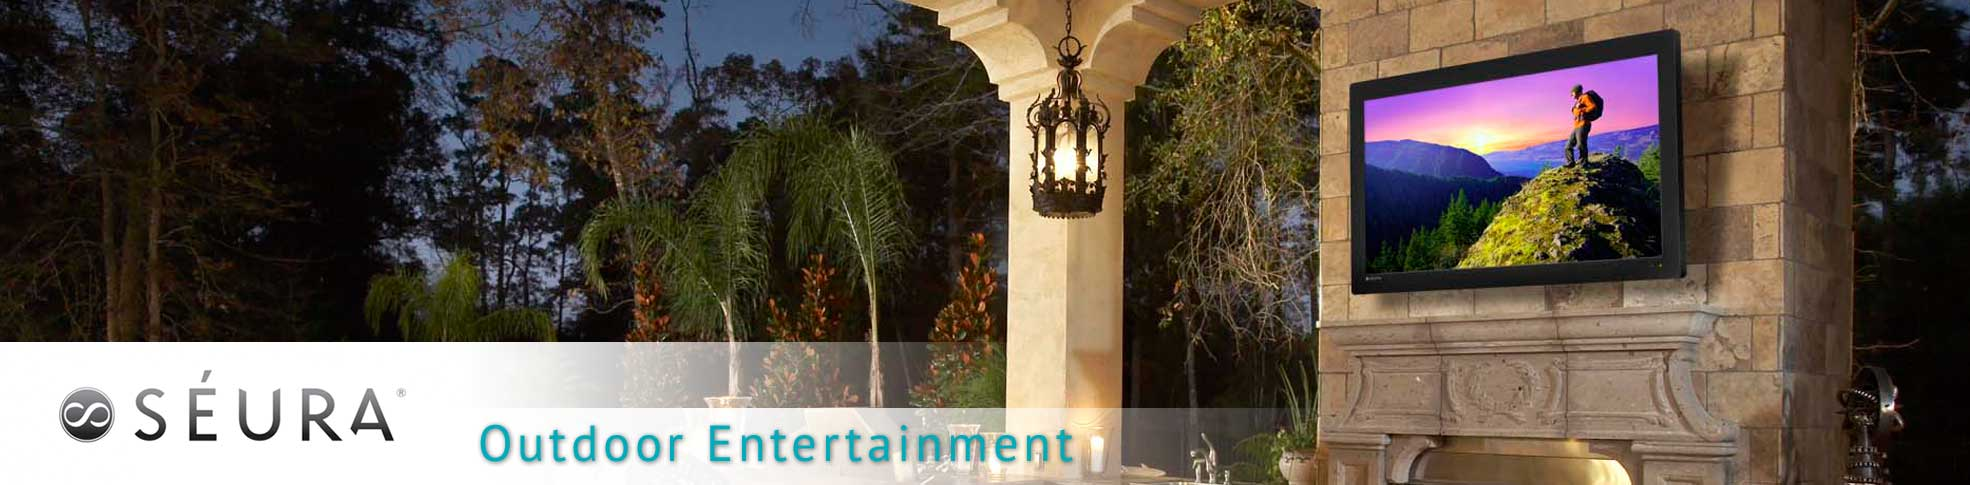 Seura makes weather resistant outdoor televisions for outdoor entertainment in Orlando, FL